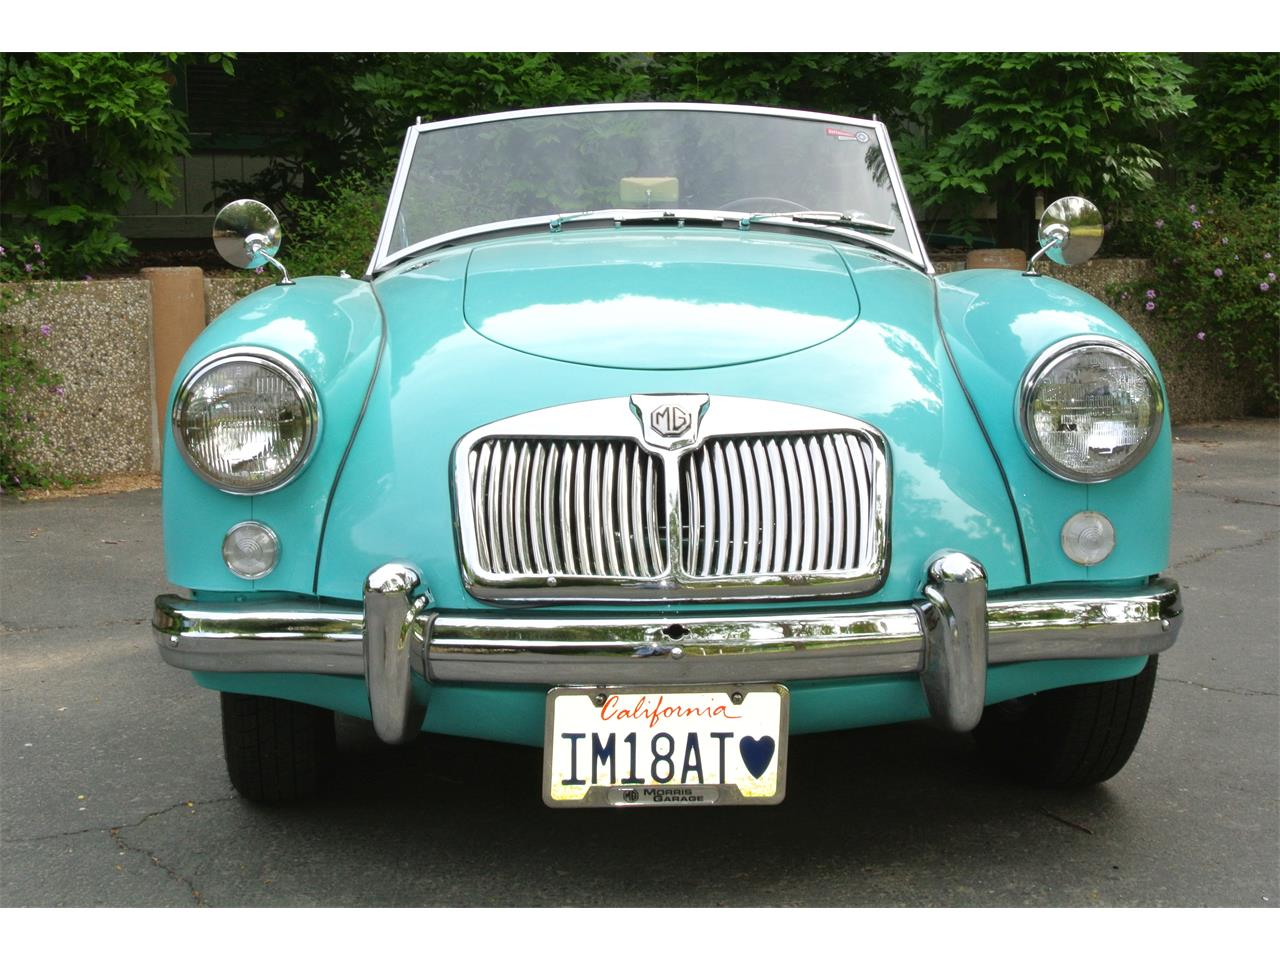 Large Picture of 1958 MGA 1500 located in Orangevale California - $18,000.00 Offered by a Private Seller - EK6K